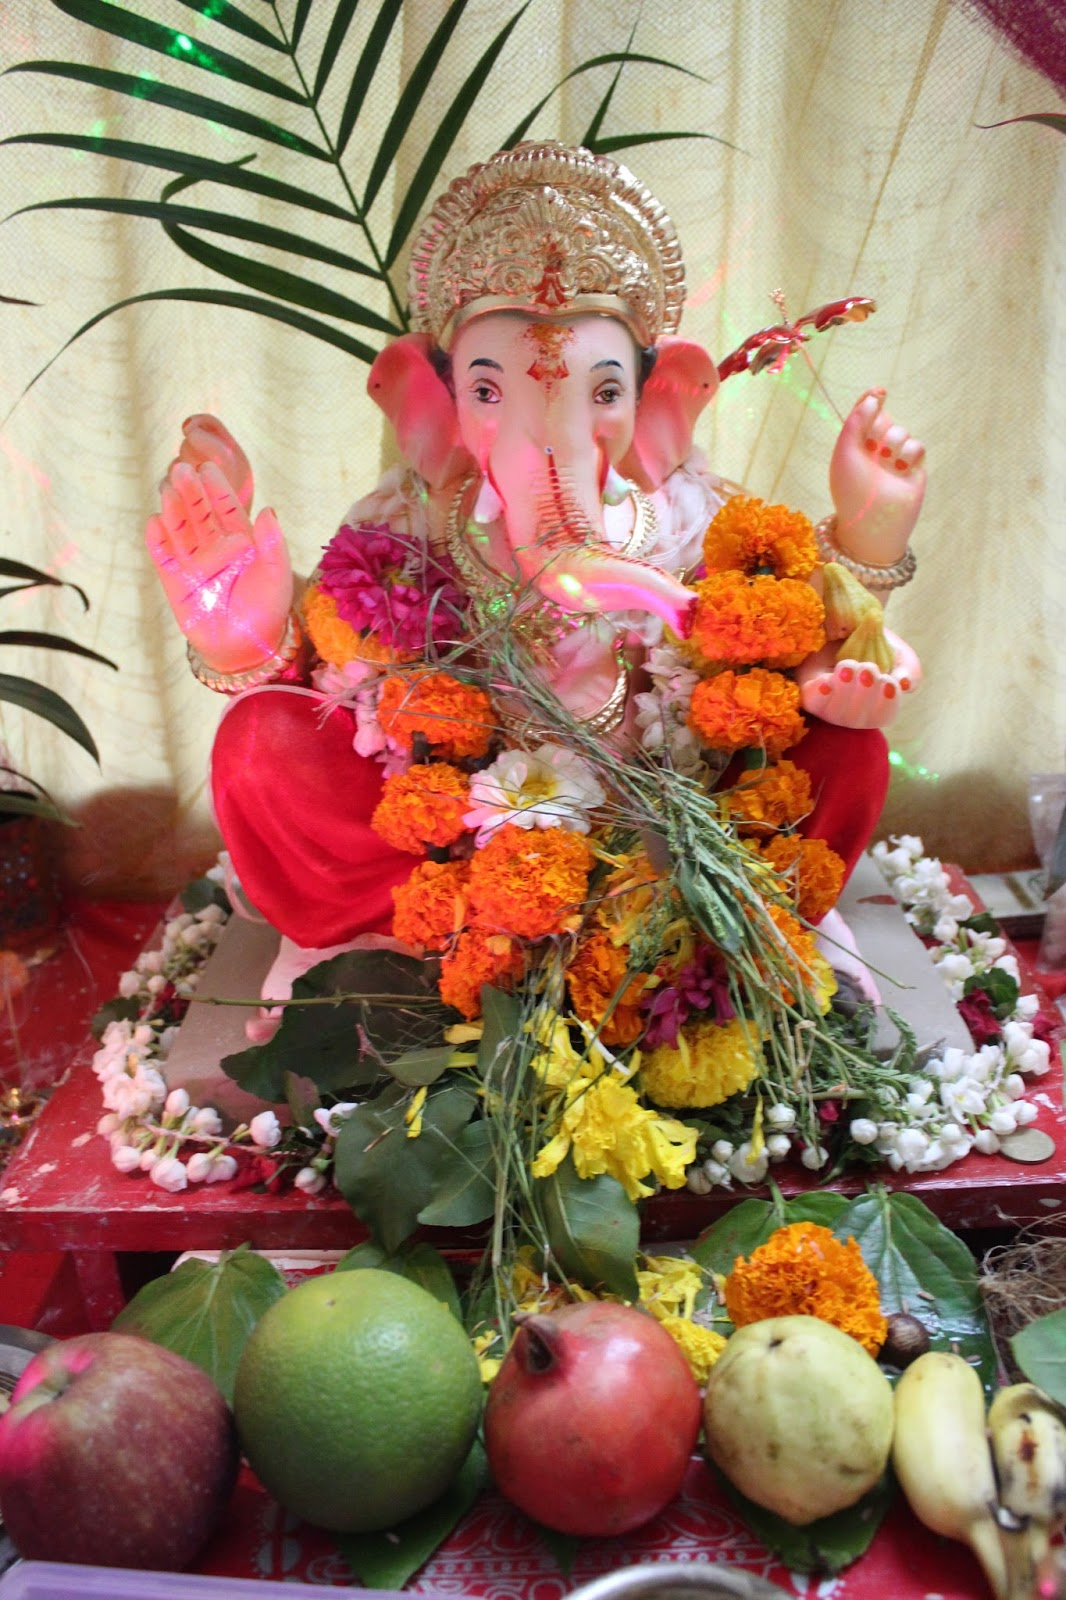 Ganesh chaturthi flowers may flower blog - Happy Ganesh Chaturthi Dear Reader All The Best Now I Ll Check How The Elections In Norway Is Turning Out From One Thing To The Other Today